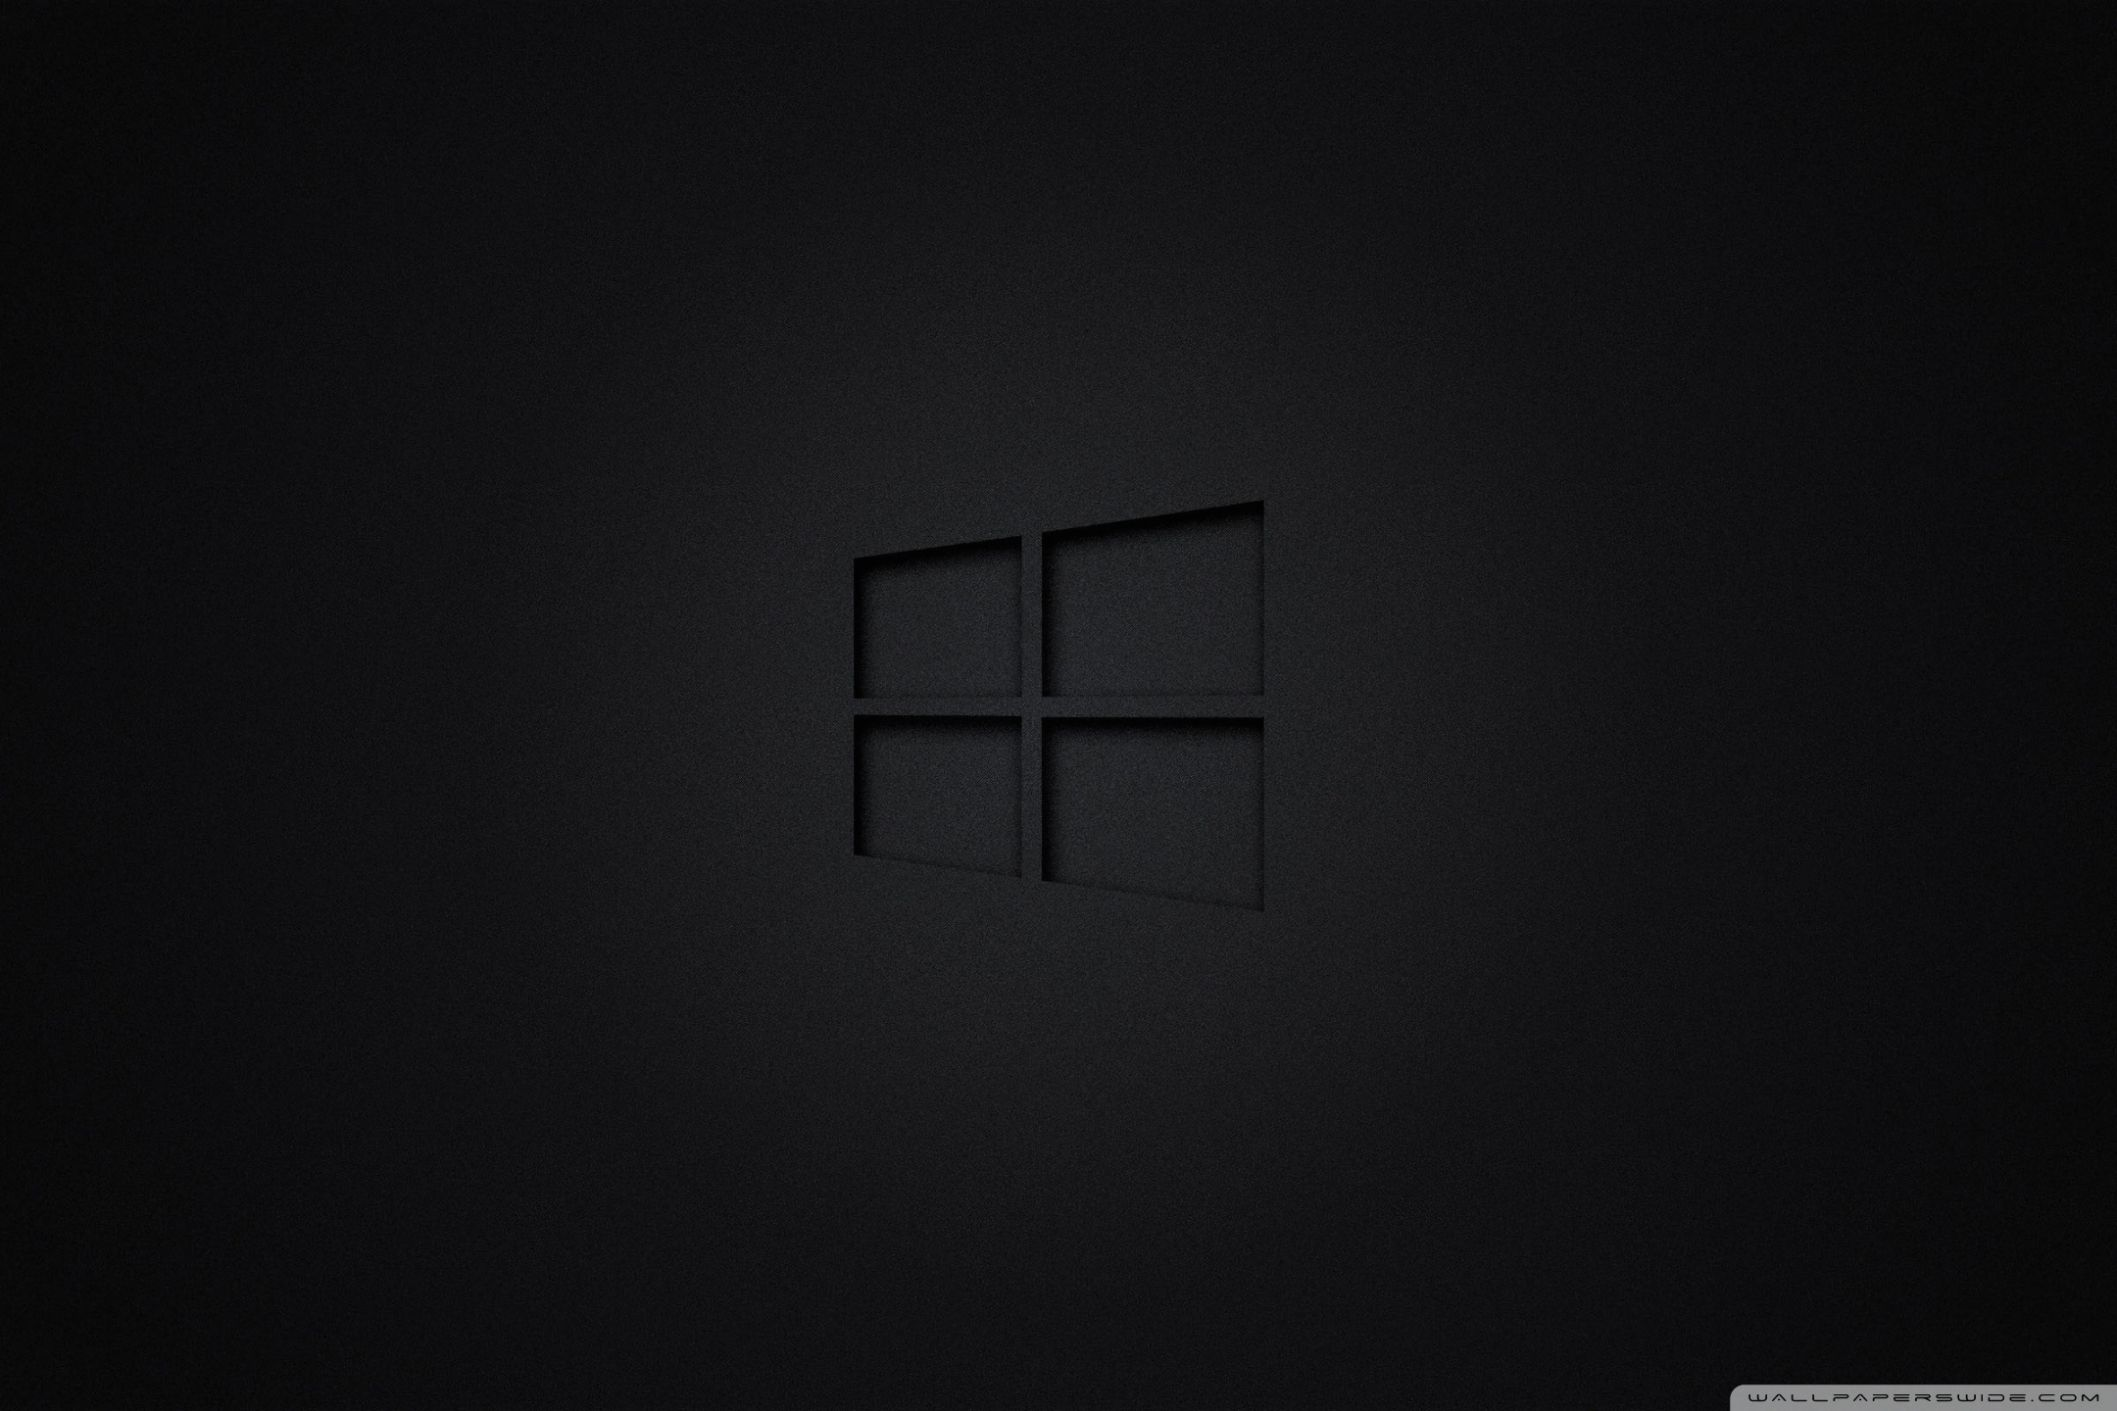 Wall Windows 10 Black 4k Hd Desktop Wallpaper For 4k Ultra Hd Tv Black Wallpaper Desktop Wallpaper Black Computer Wallpaper